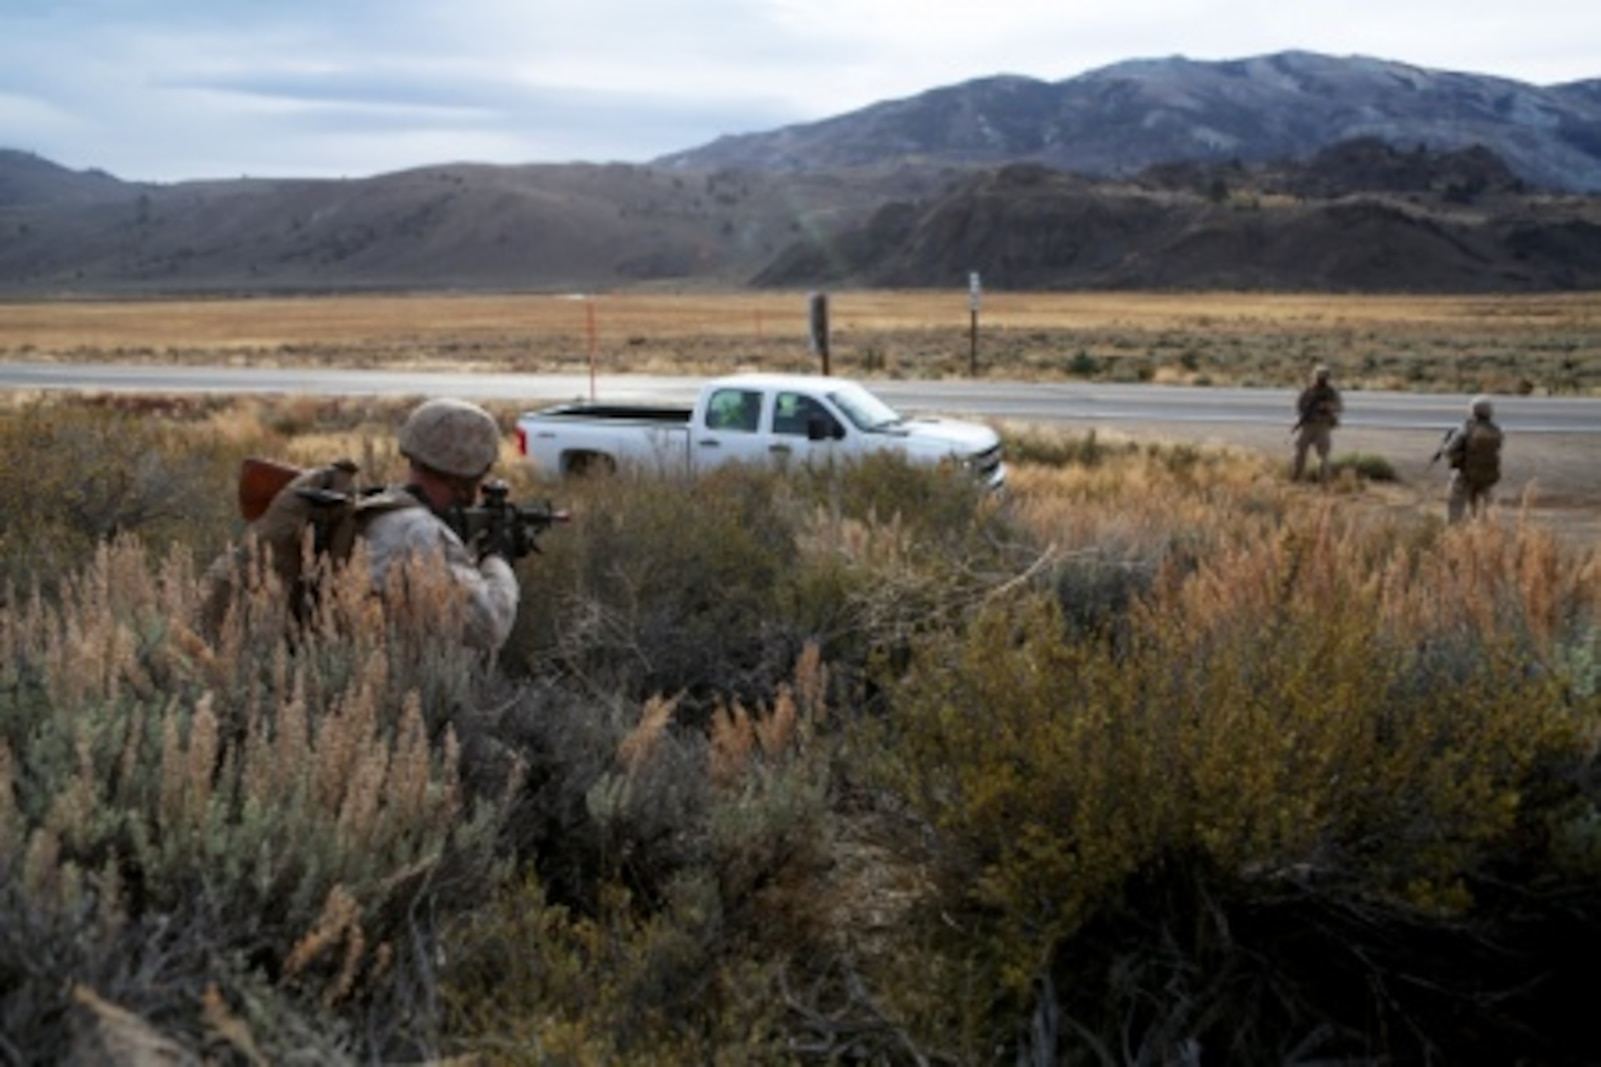 Marines from Engineer Platoon, Combat Logistics Battalion 11, 1st Marine Logistics Group, stop a potential threat during a security patrol in Mountain Exercise 6-15 at Marine Corps Mountain Warfare Training Center, Bridgeport, Calif., Oct. 25, 2015. Engineer Platoon conducted two consecutive days of security patrols along a mountain trail to provide route reconnaissance, deter enemy forces and remove obstacles that would restrict friendly and civilian movement.